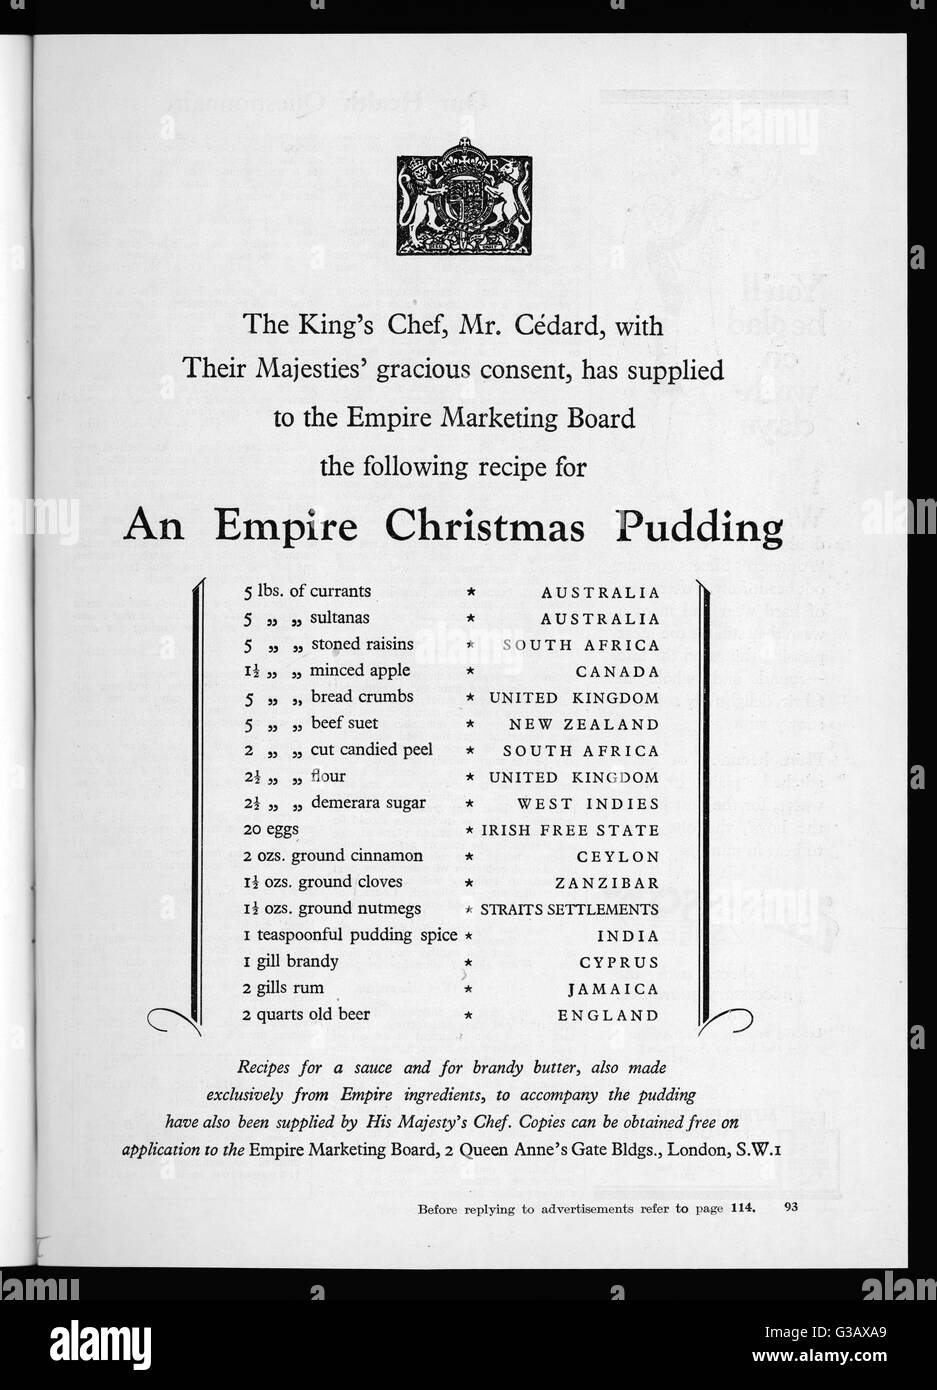 A recipe for Christmas Pudding  which uses only ingredients  from The British Empire      Date: 1927 - Stock Image